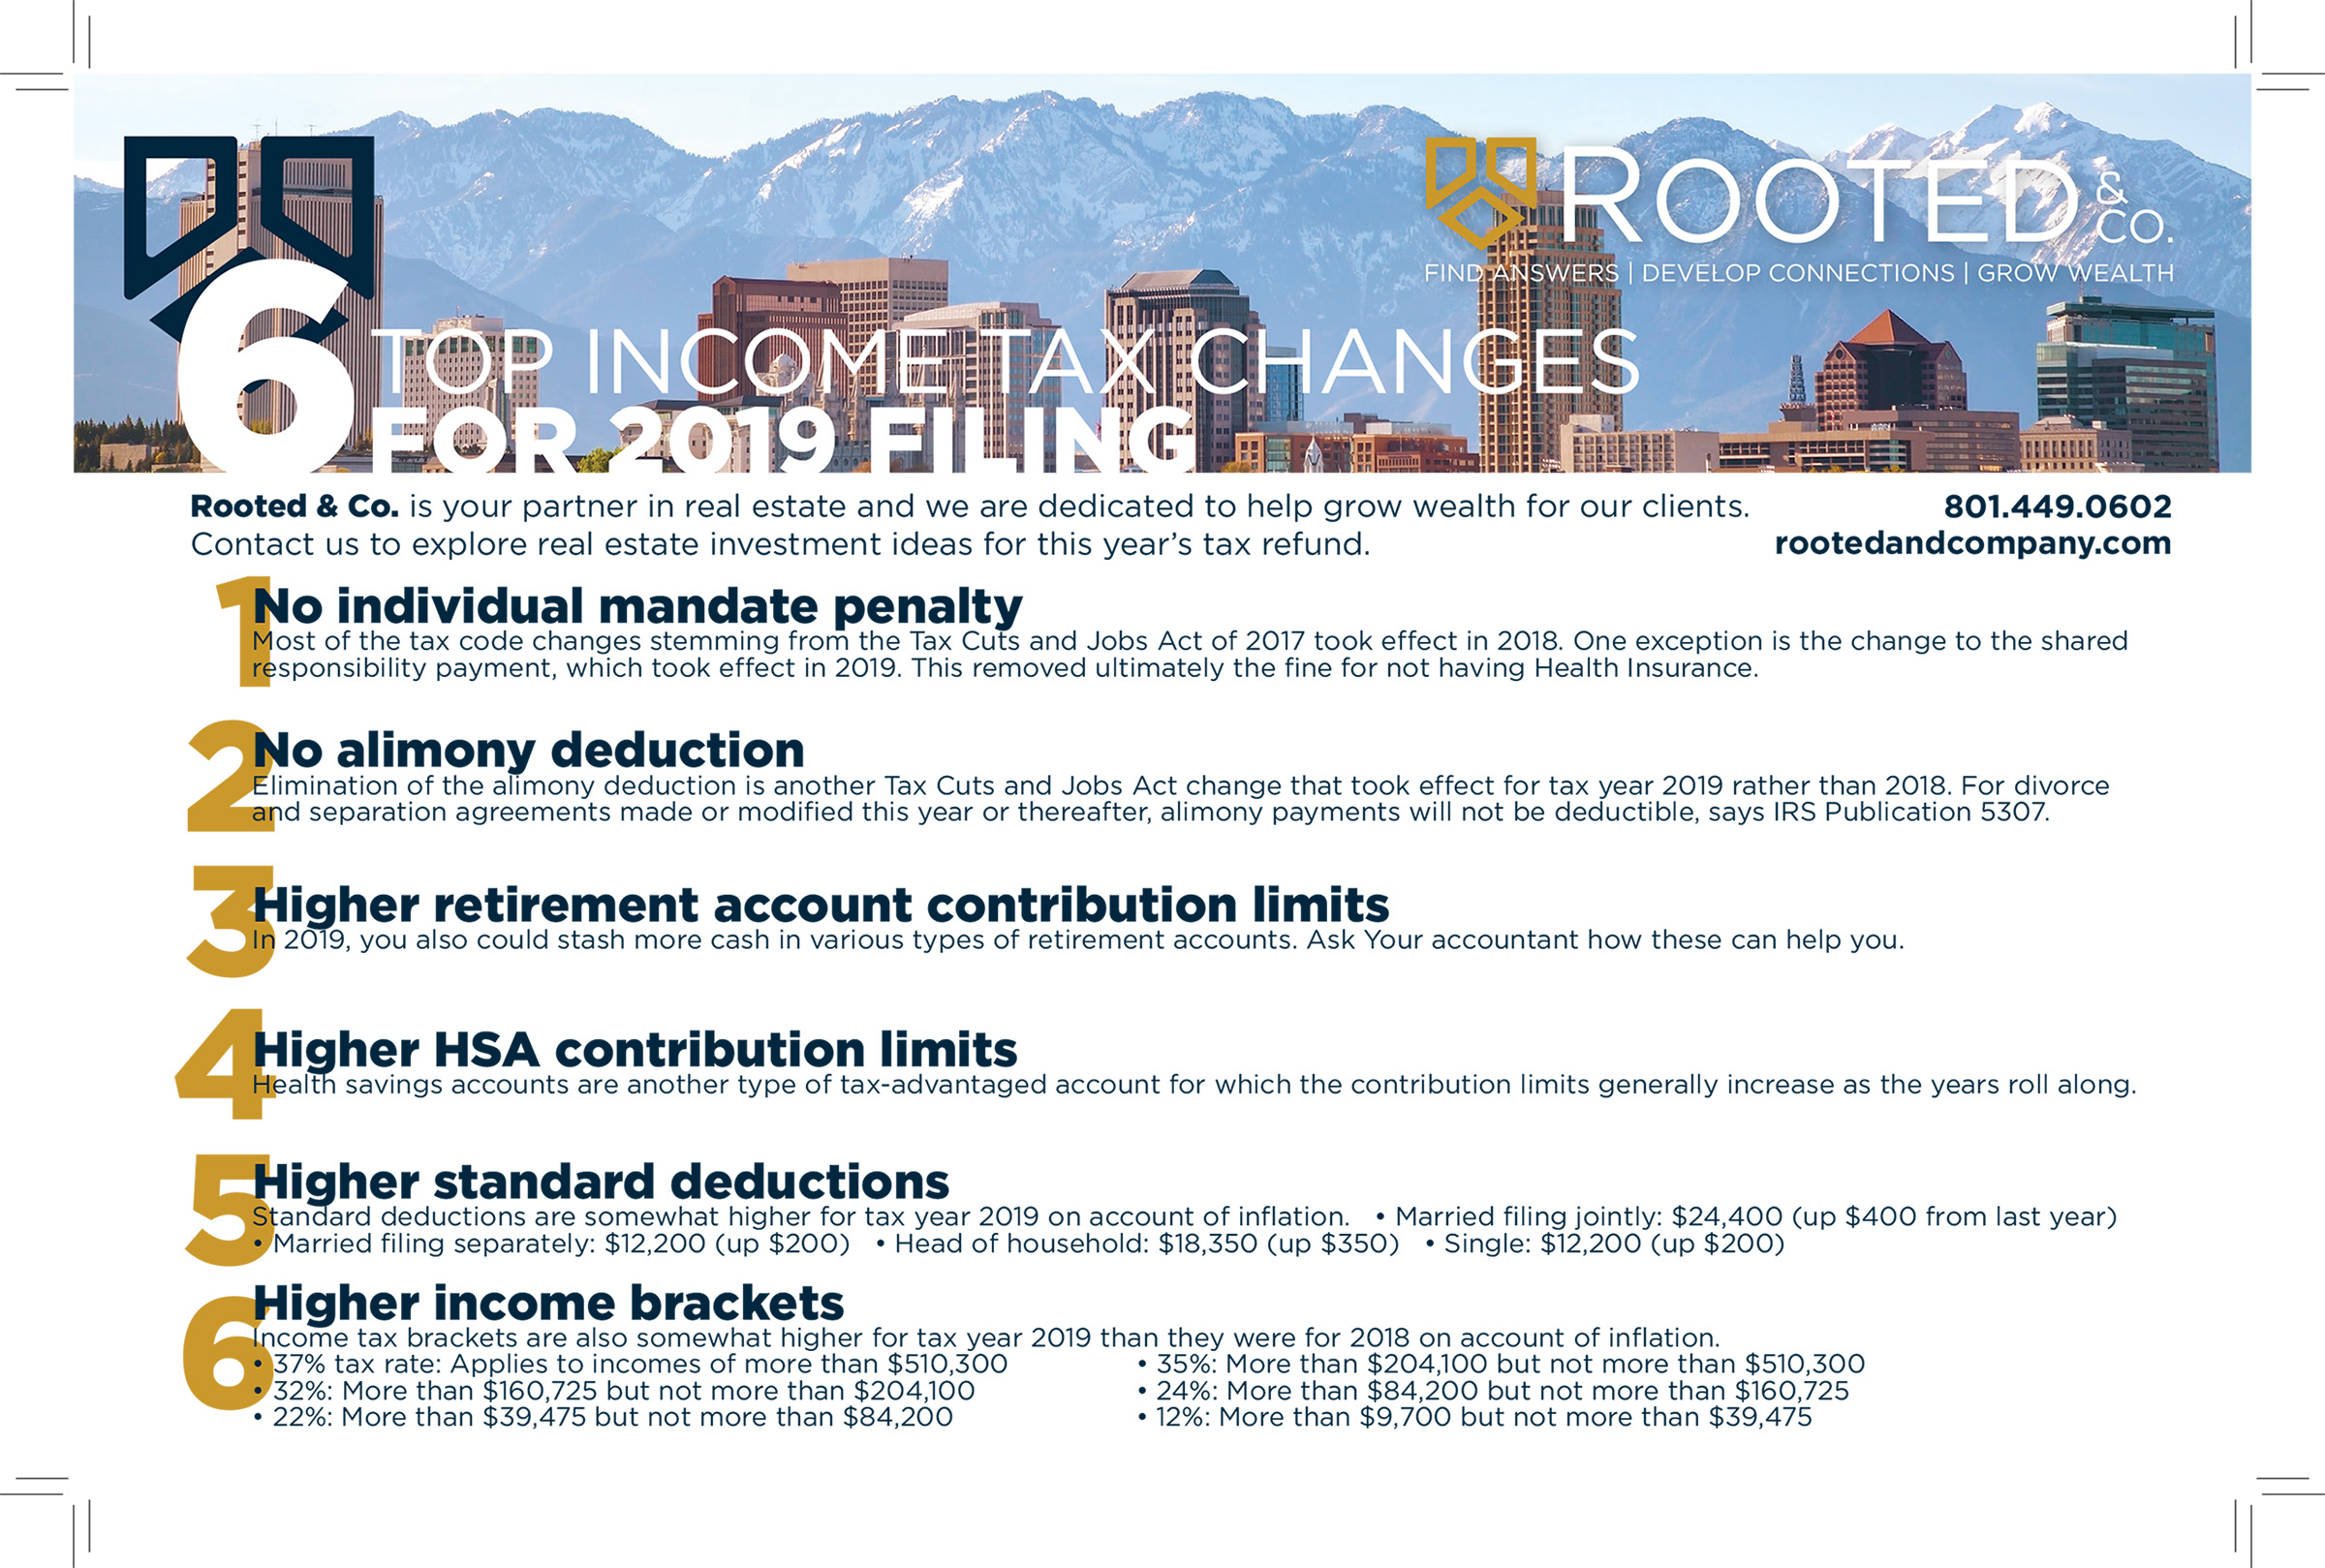 Top 6 Tax Changes for 2019, Rooted&Co, RootedandCompany, Real Estate, 2019, Tax, Taxes